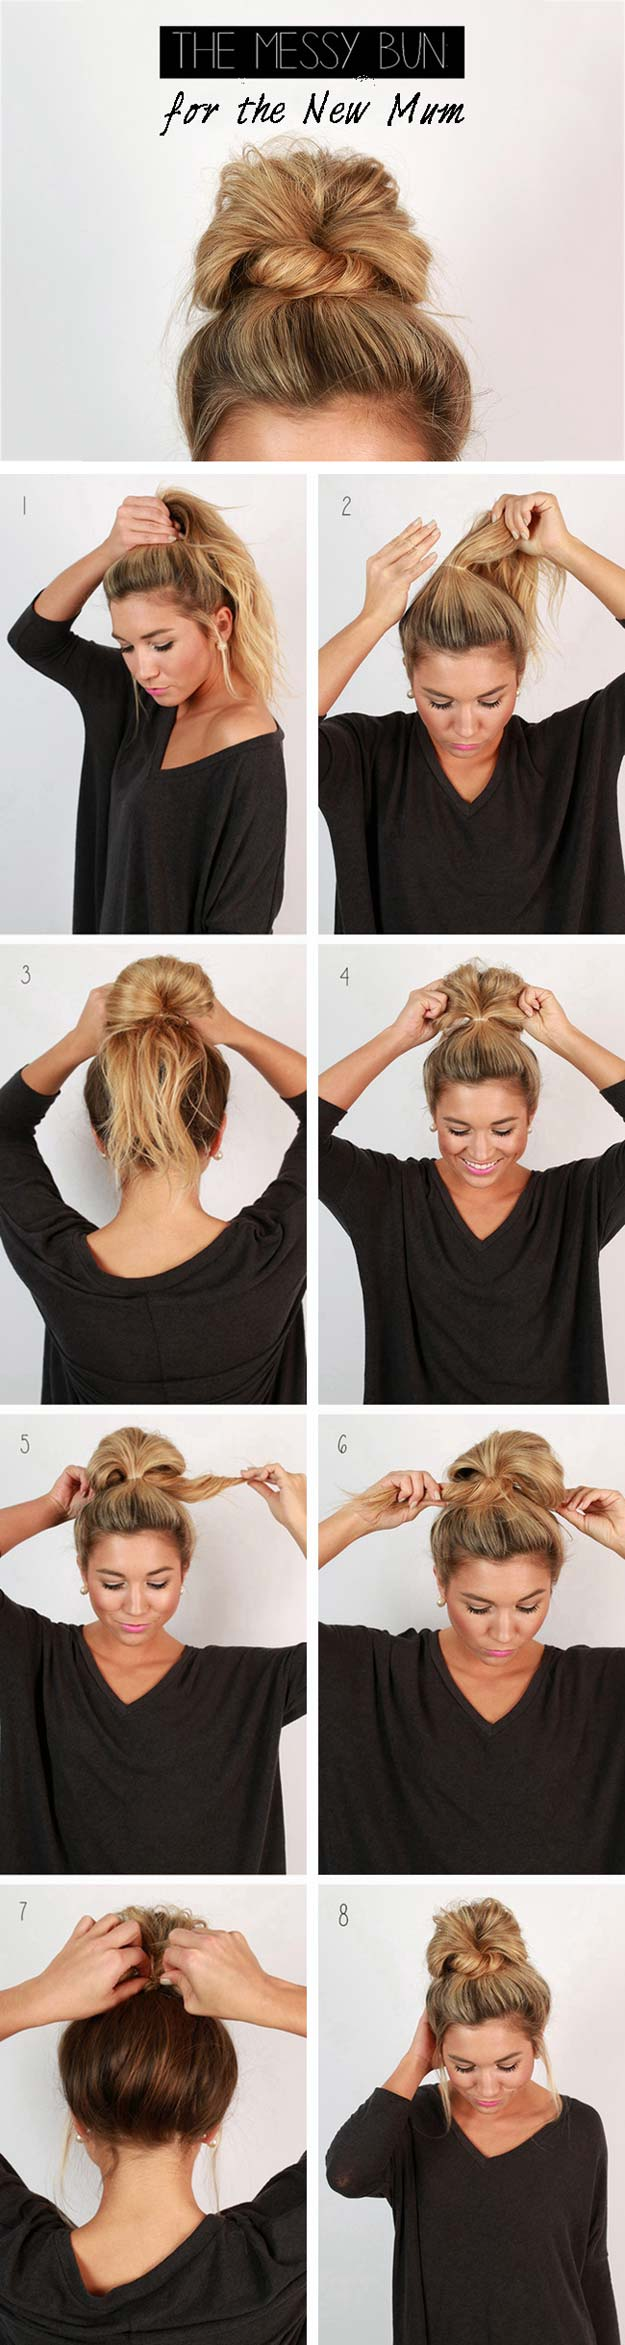 Miraculous 41 Diy Cool Easy Hairstyles That Real People Can Actually Do At Short Hairstyles Gunalazisus